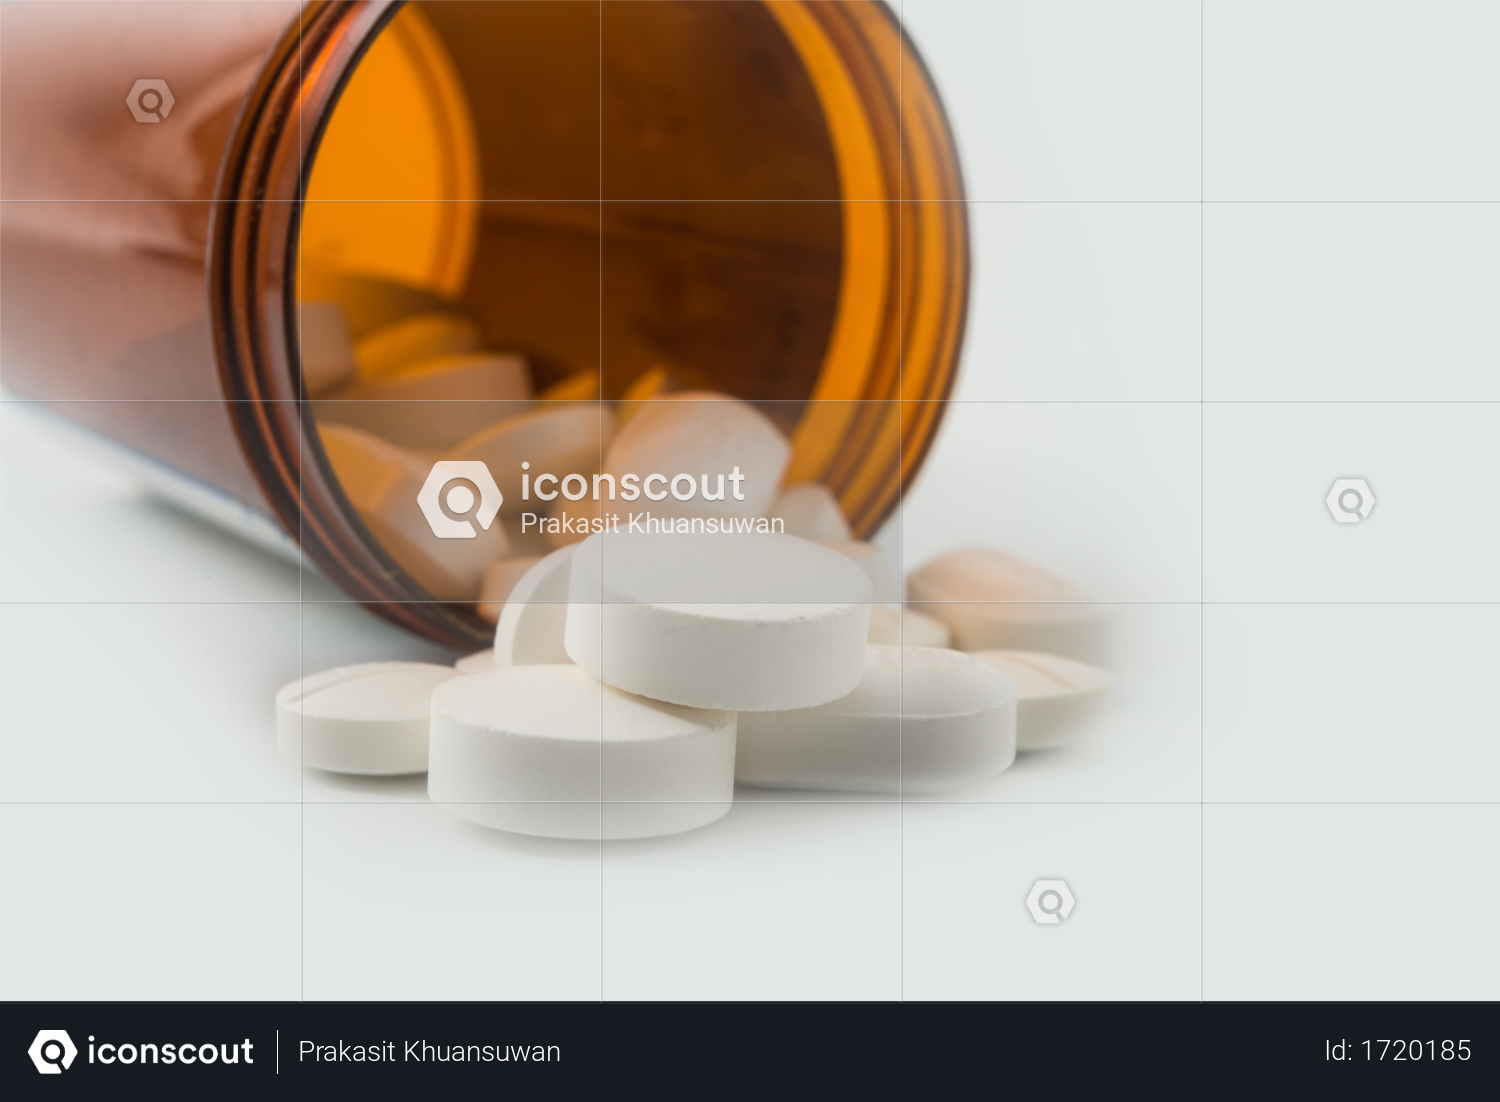 Premium Medical Pills Spilling Out Of A Toppled From Pill Bottle Photo Download In Png Jpg Format Pill Bottles Pills Pill